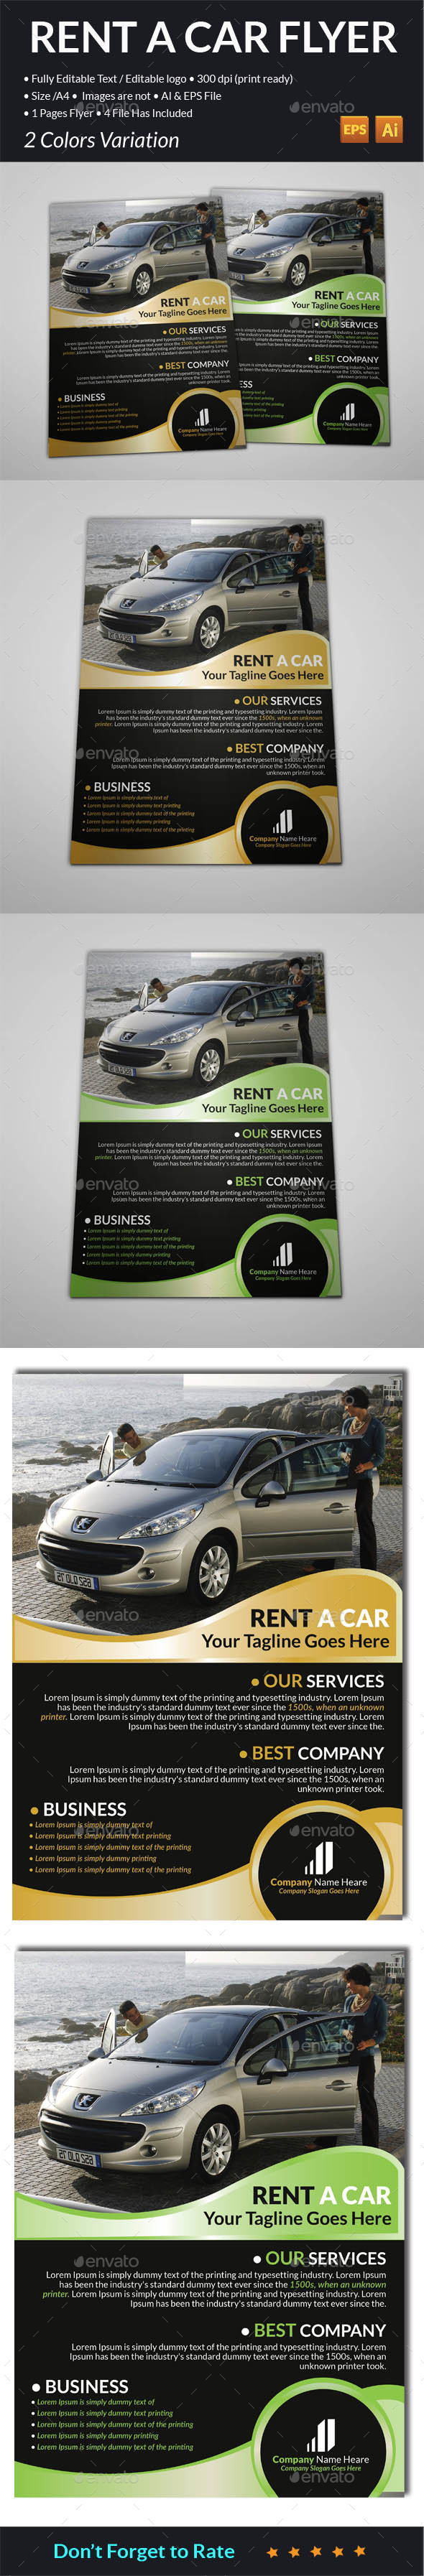 Rent A Car Flyer  - Corporate Flyers